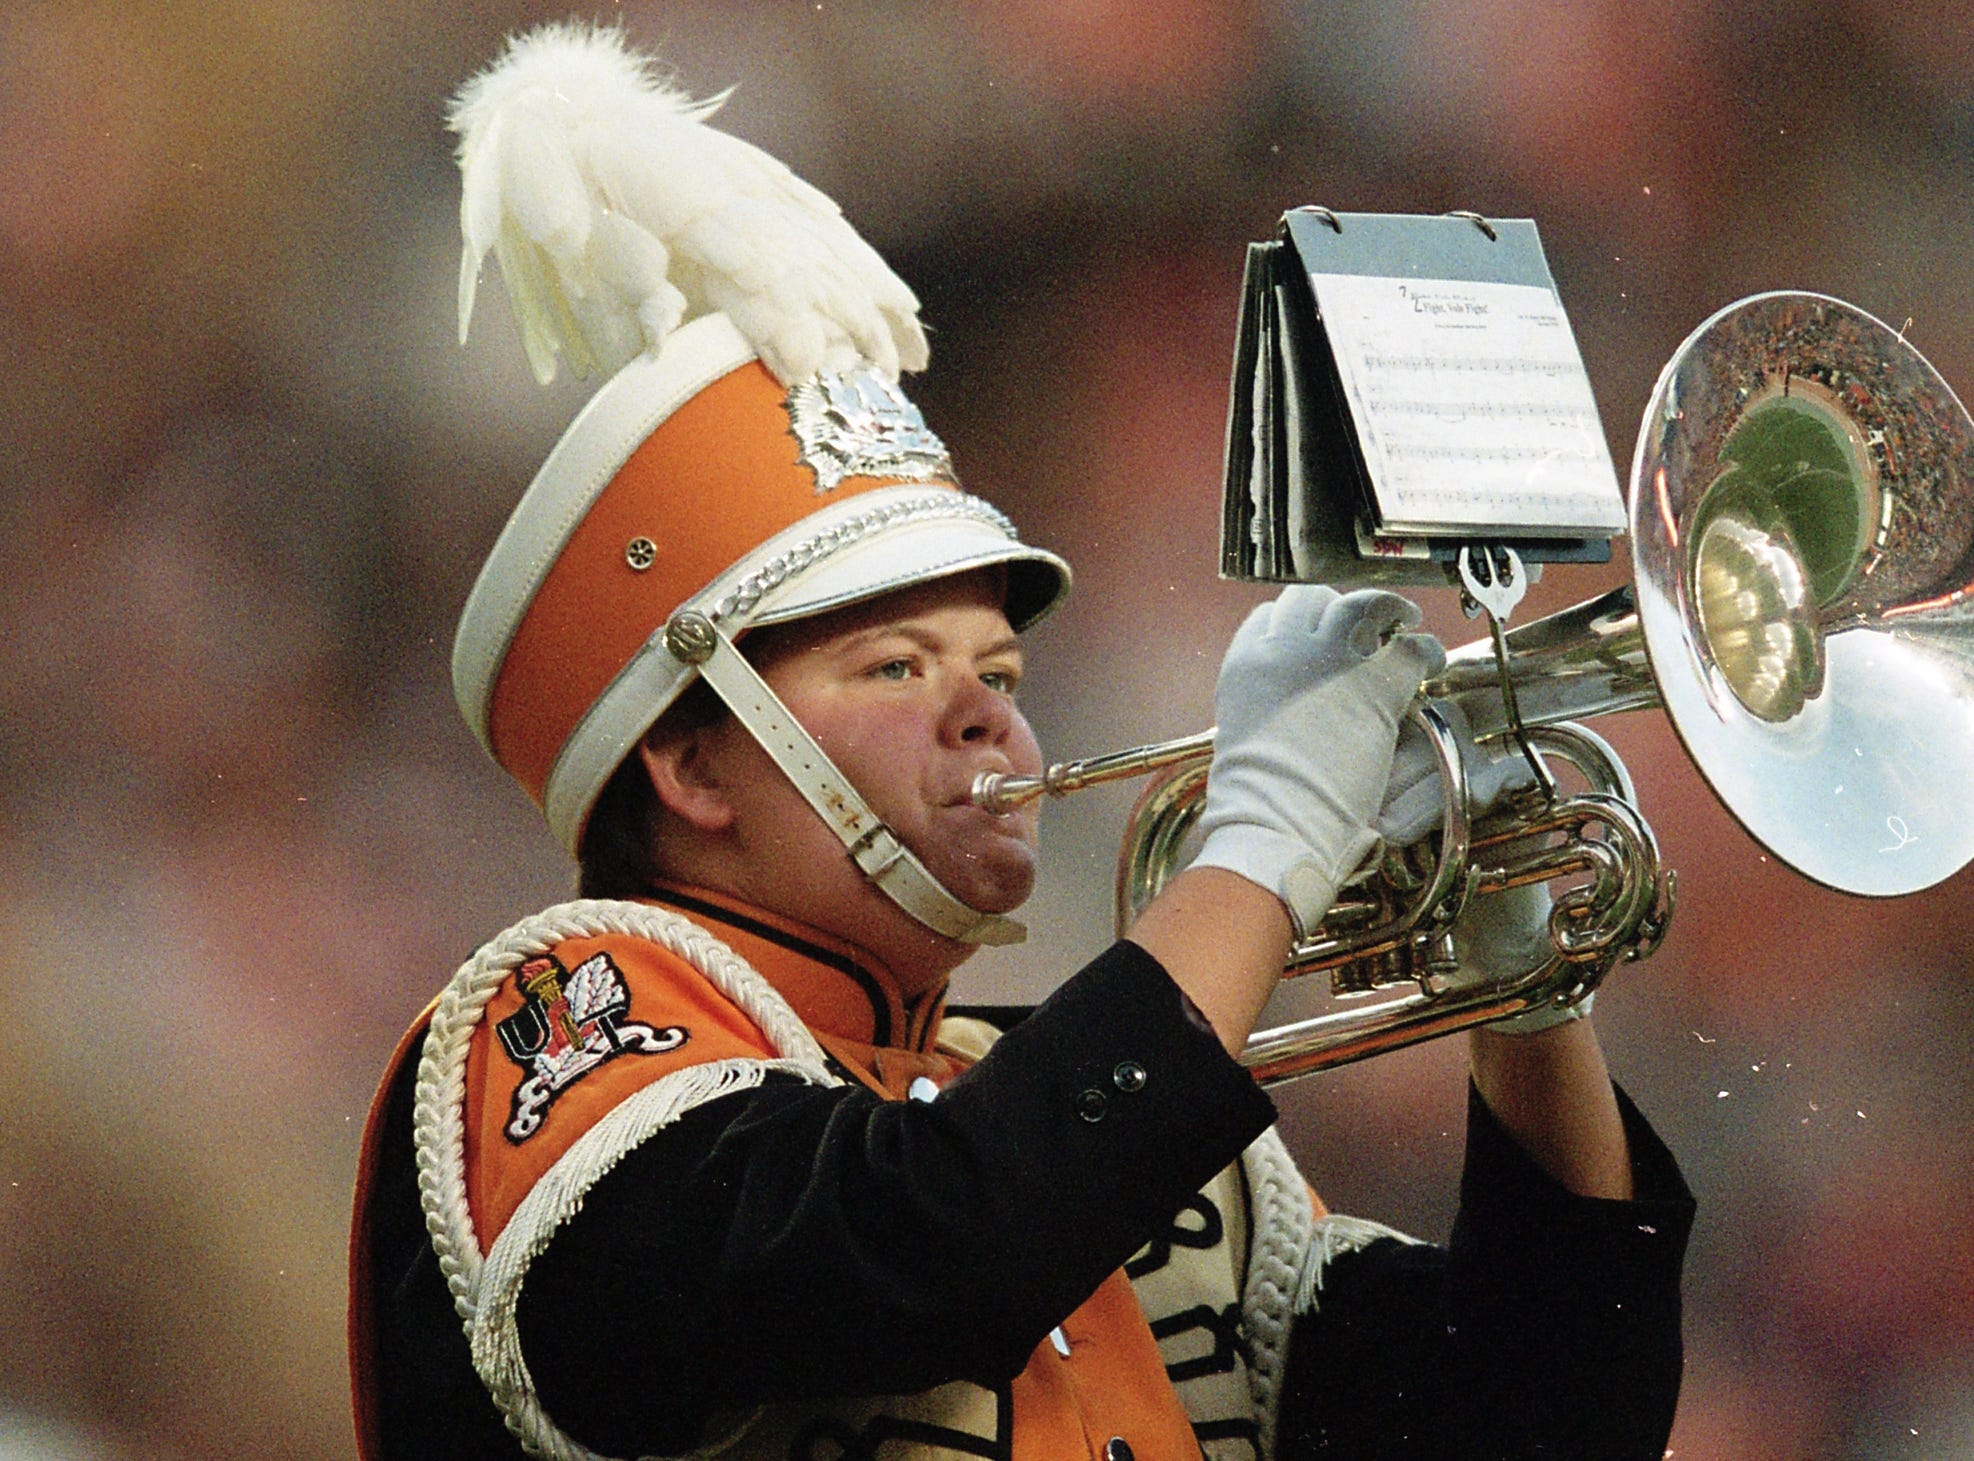 A Pride of the Southland Band member performs during halftime during a game between Tennessee and Missouri at Neyland Stadium in Knoxville, Tennessee on Saturday, November 17, 2018.